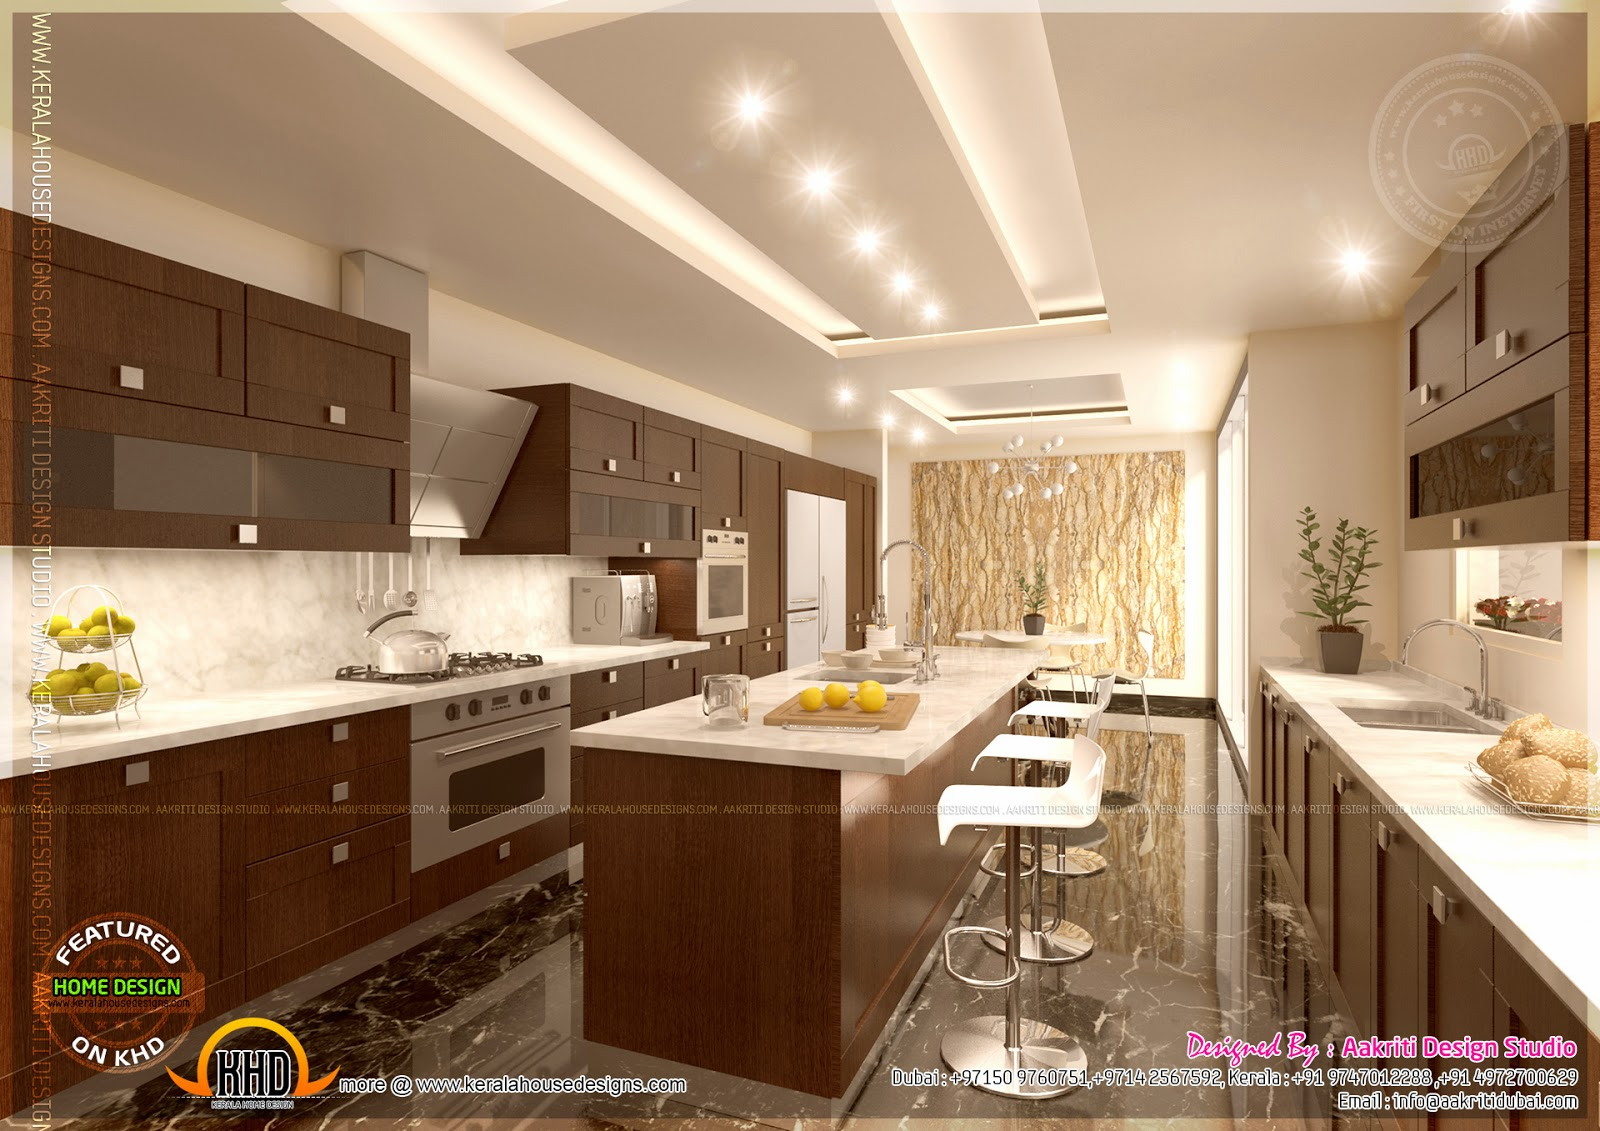 Kitchen designs by aakriti design studio kerala home for Kitchen design ideas images